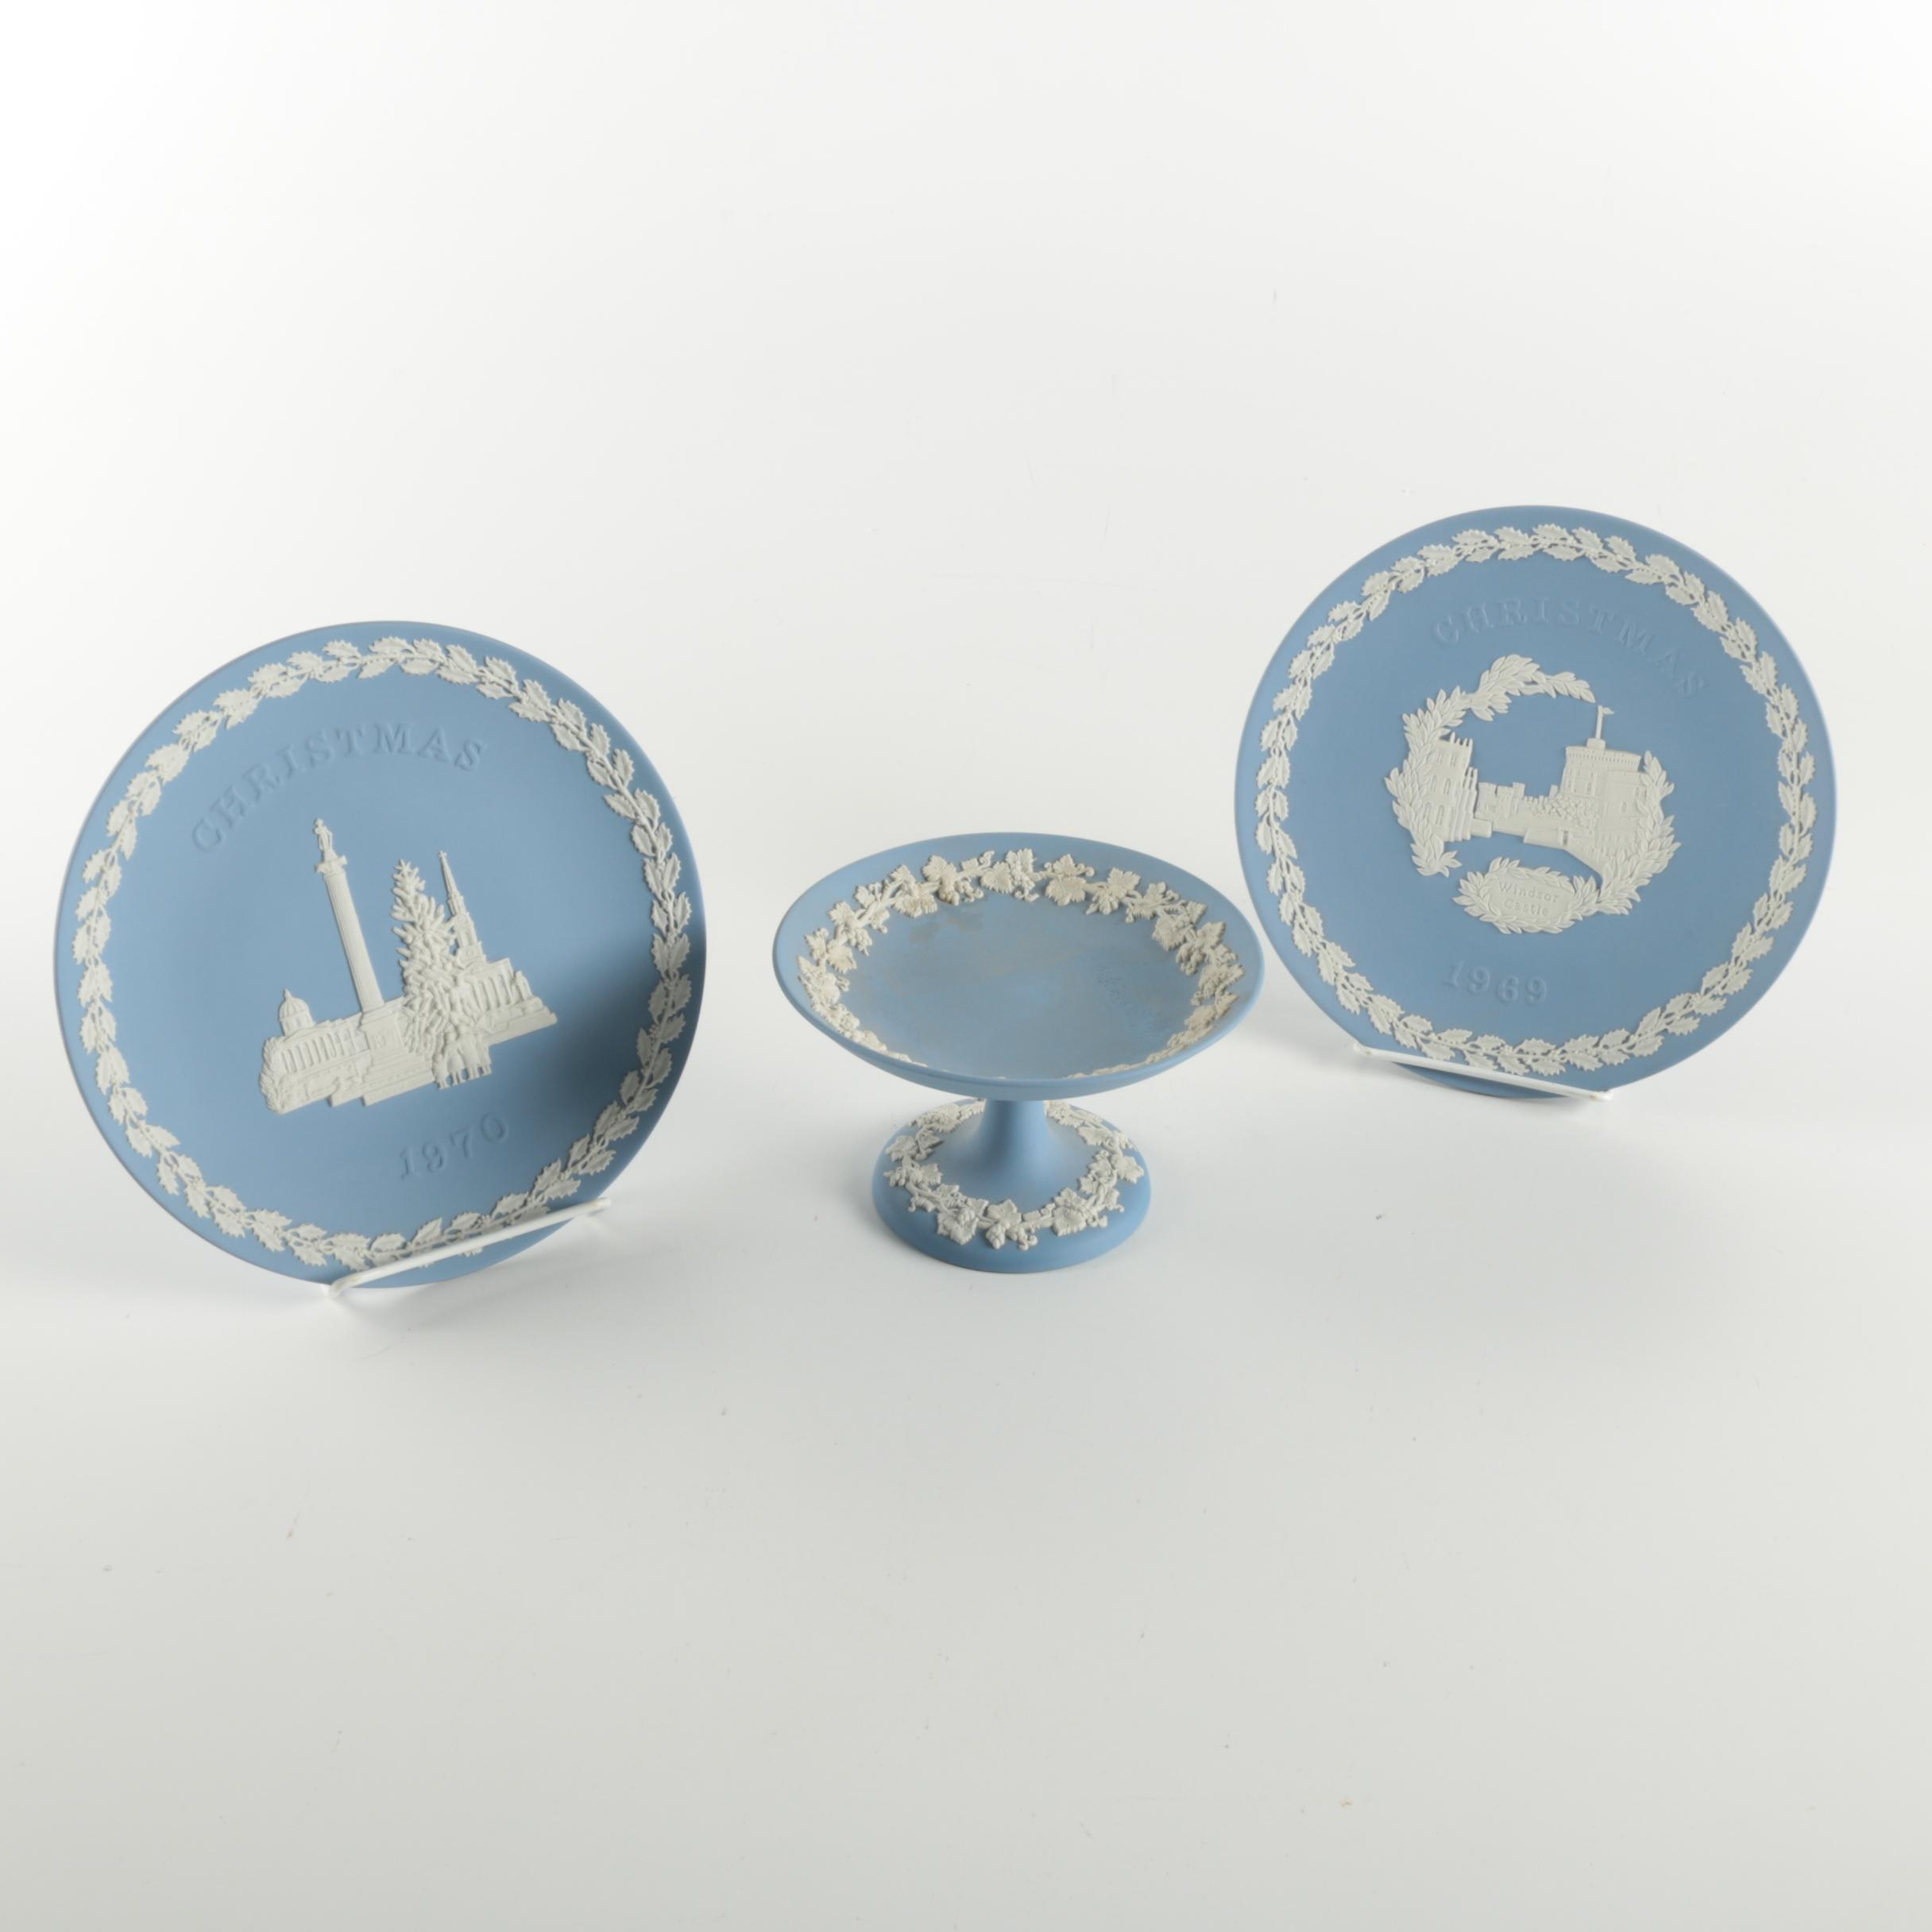 Vintage Wedgwood Bisque Plates and Compote